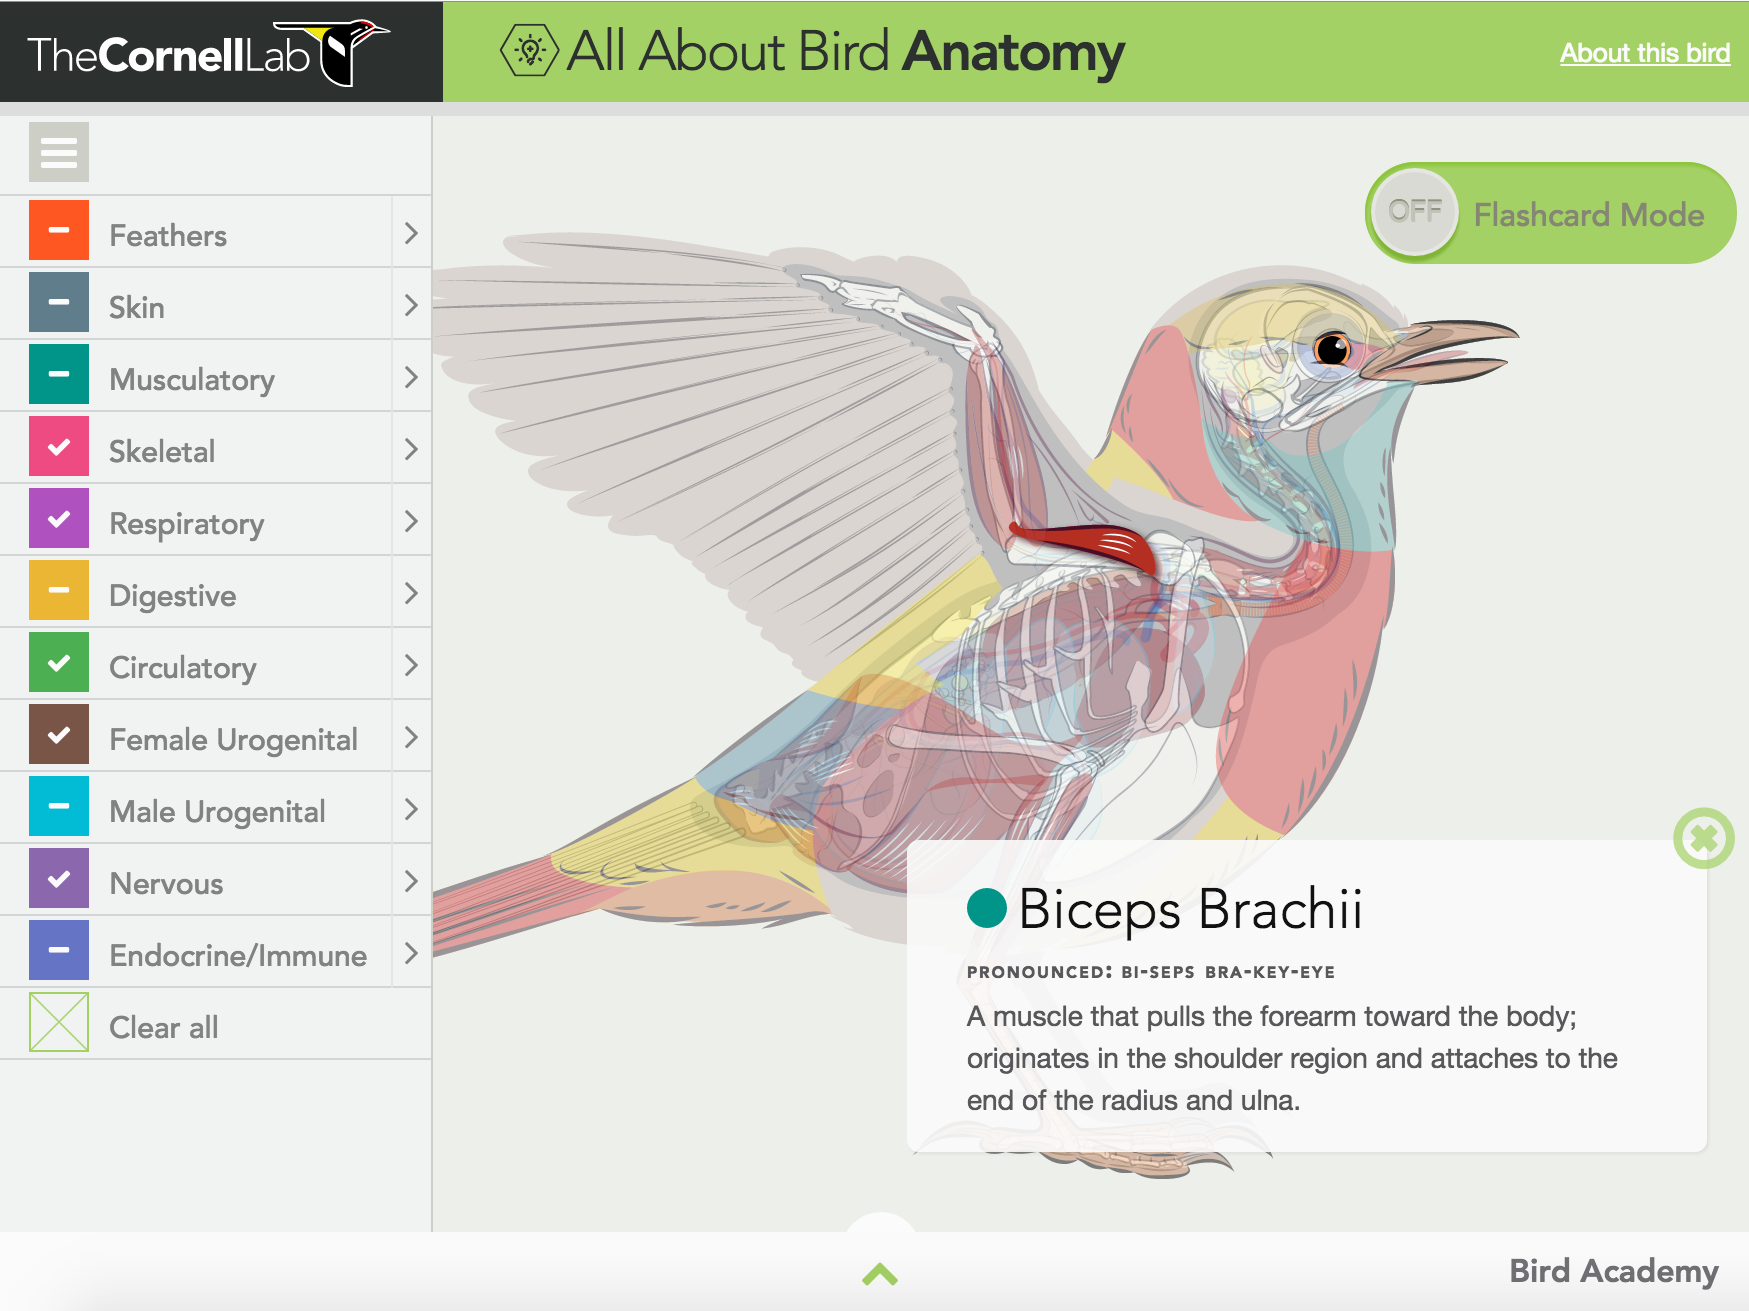 New on GameUp: All About Bird Anatomy